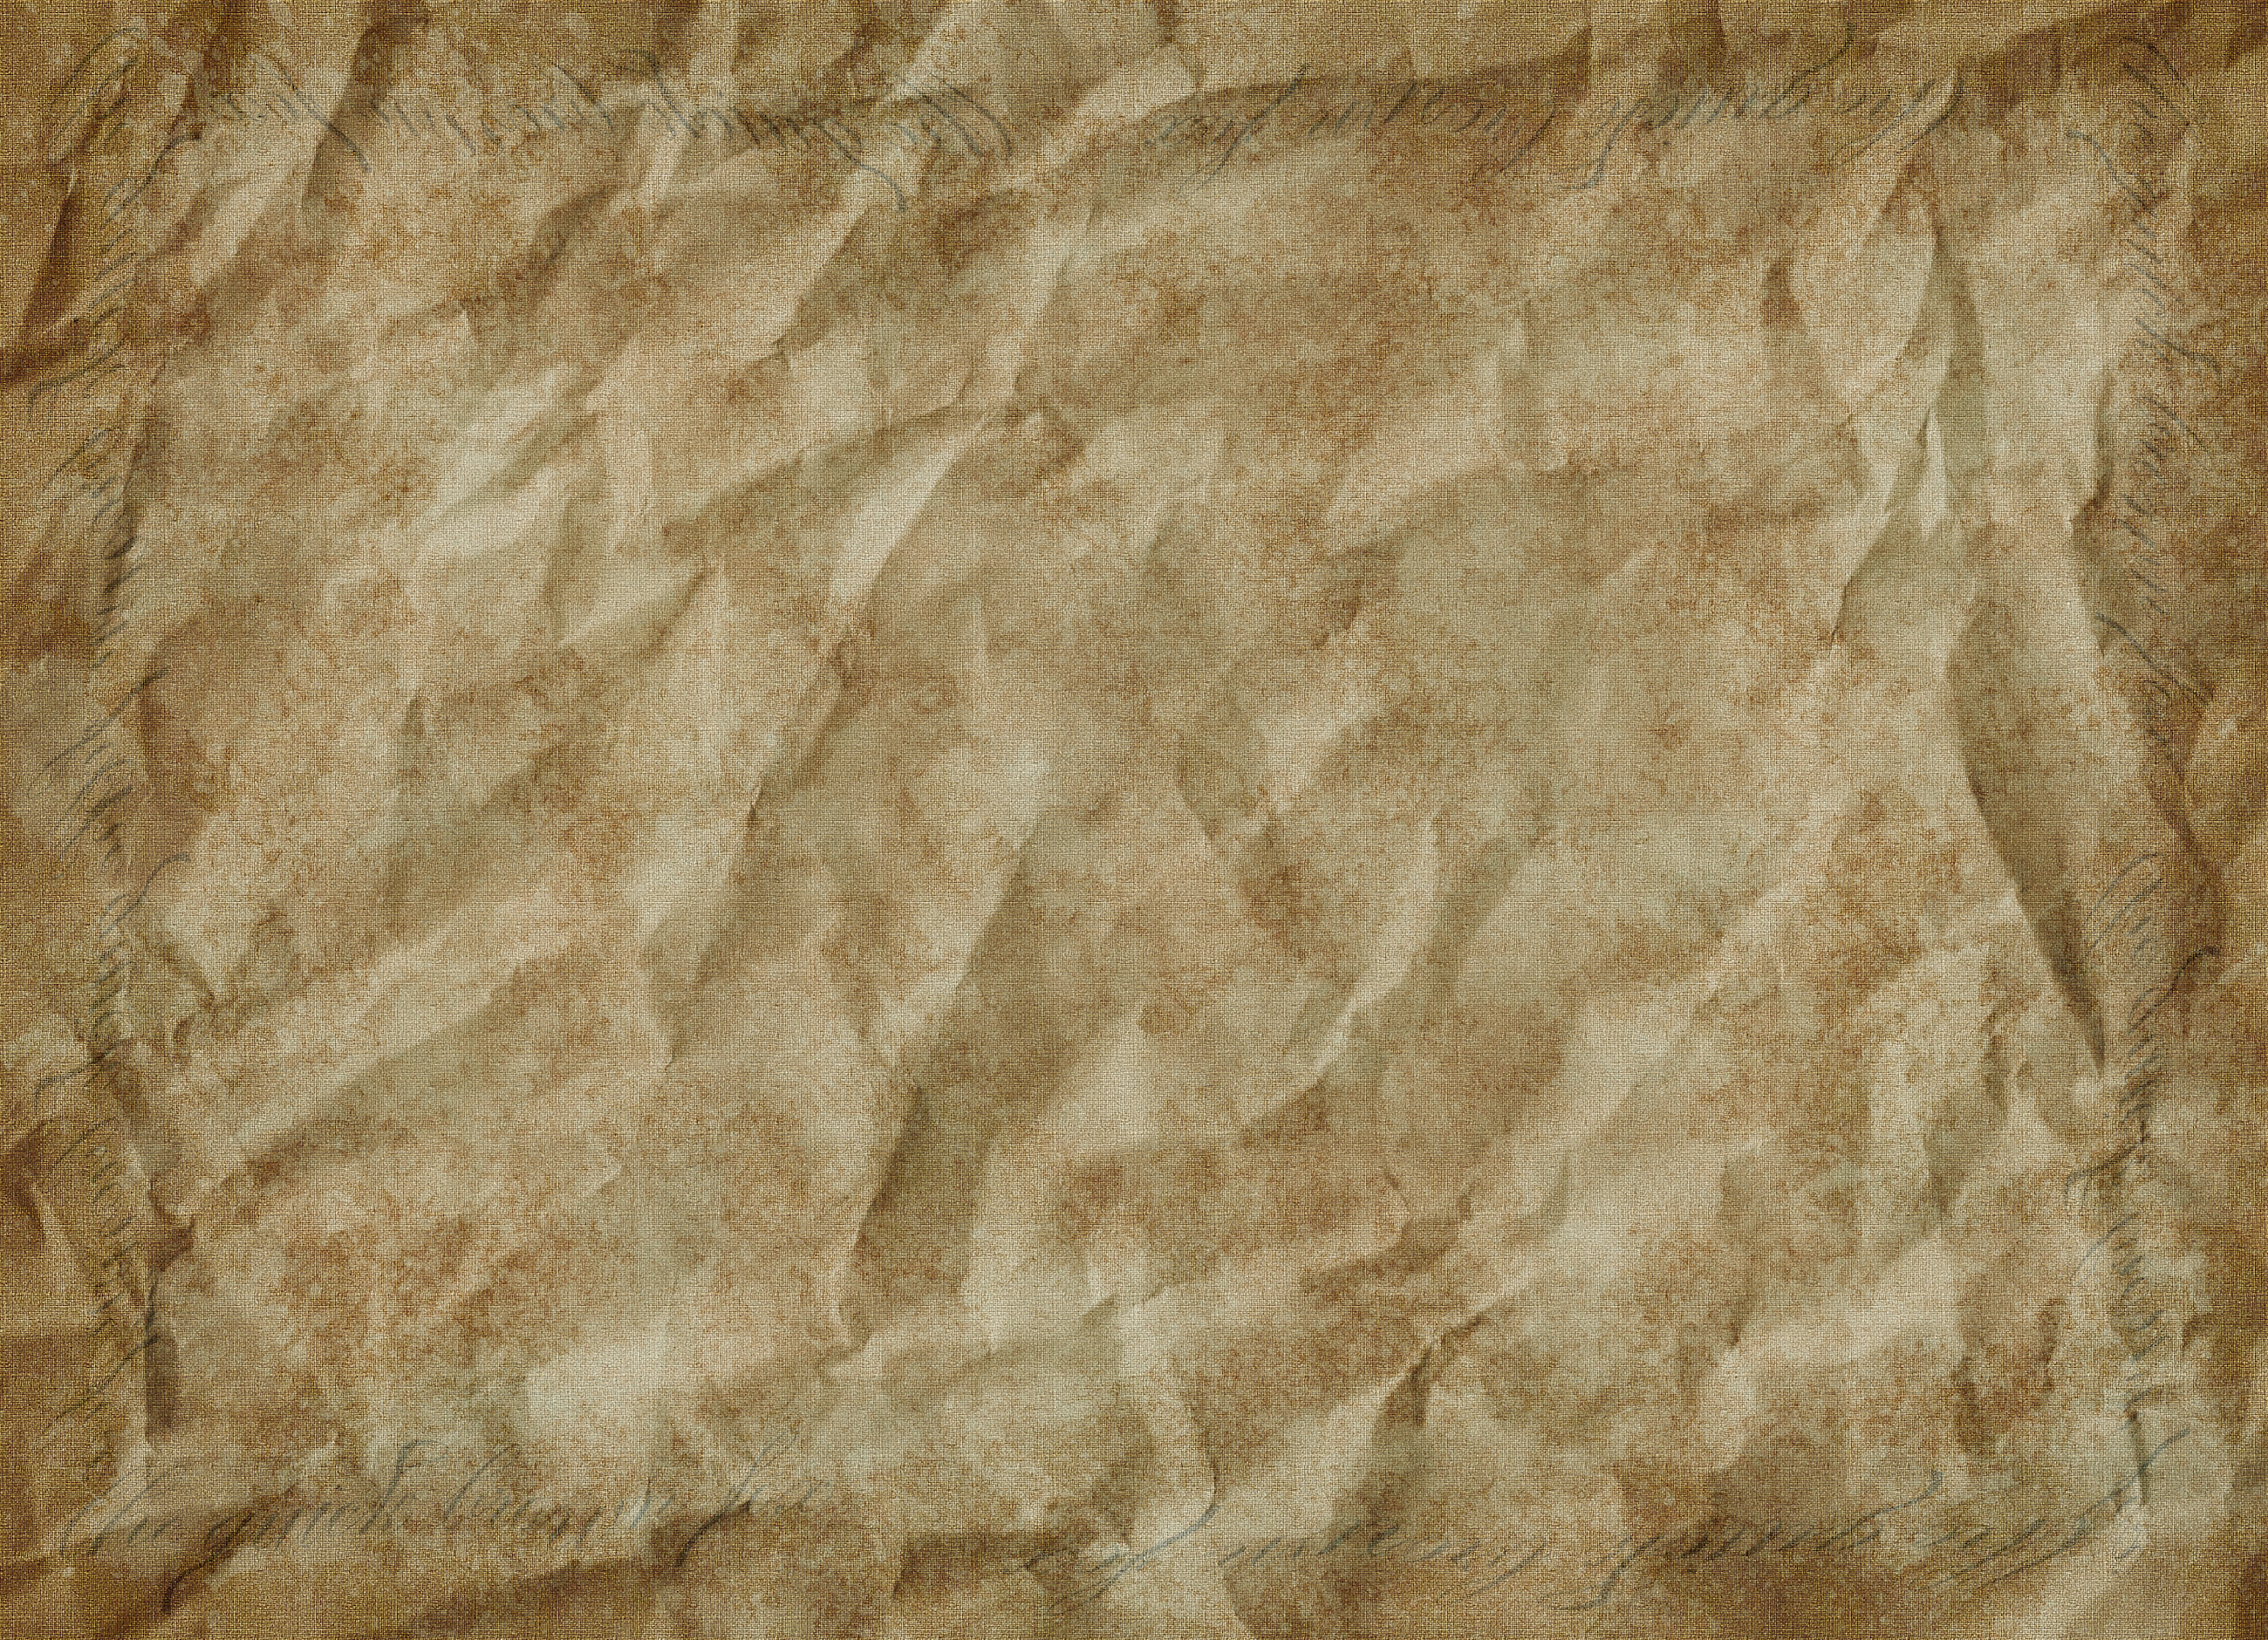 Homemade Texture for Photoshop | Humphrey Hippo's Blog